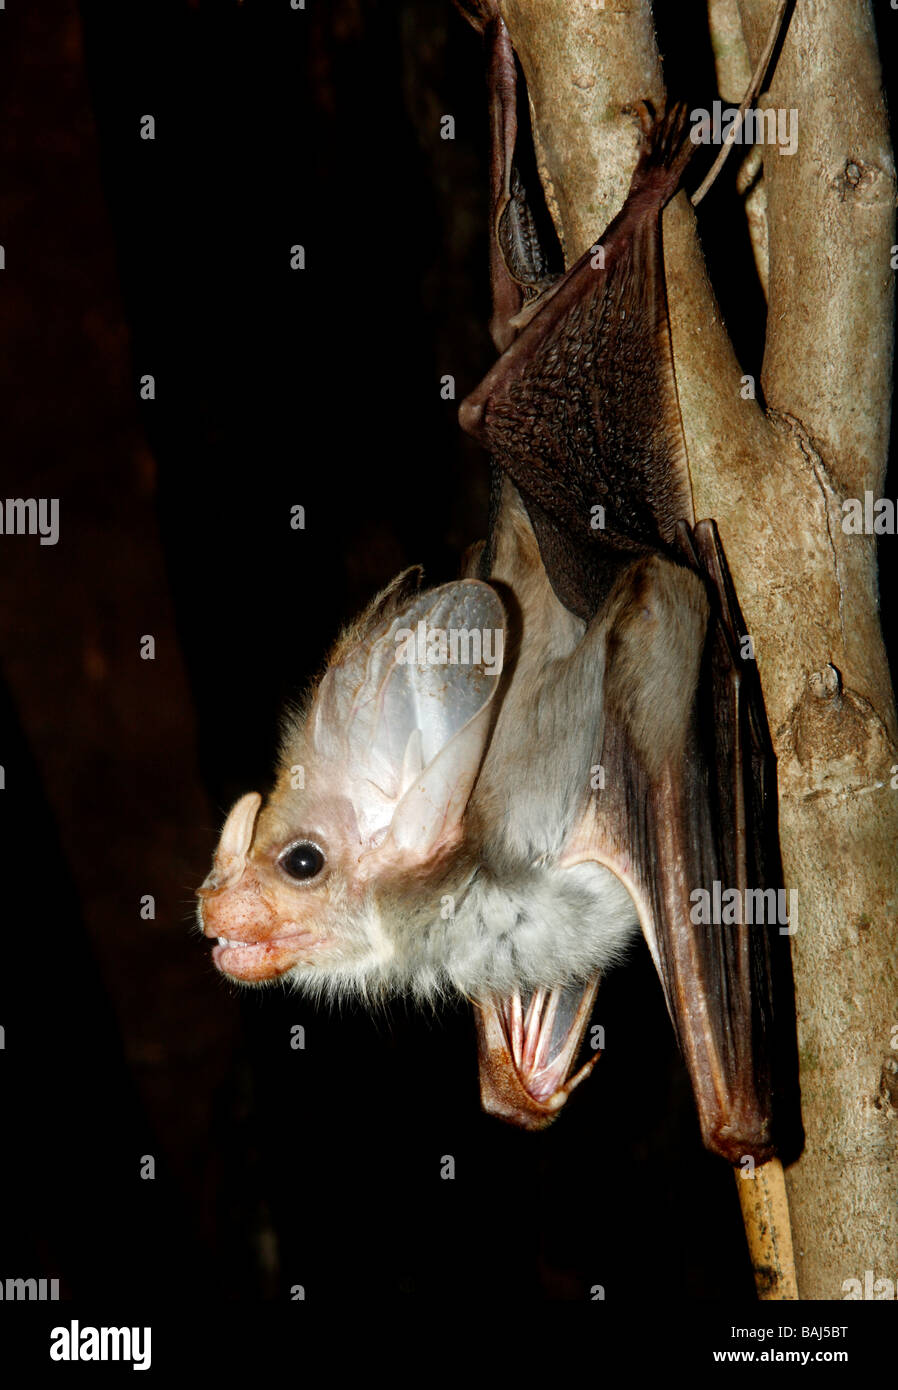 ghost-bat-macroderma-gigas-also-known-as-the-false-vampire-bat-is-BAJ5BT.jpg